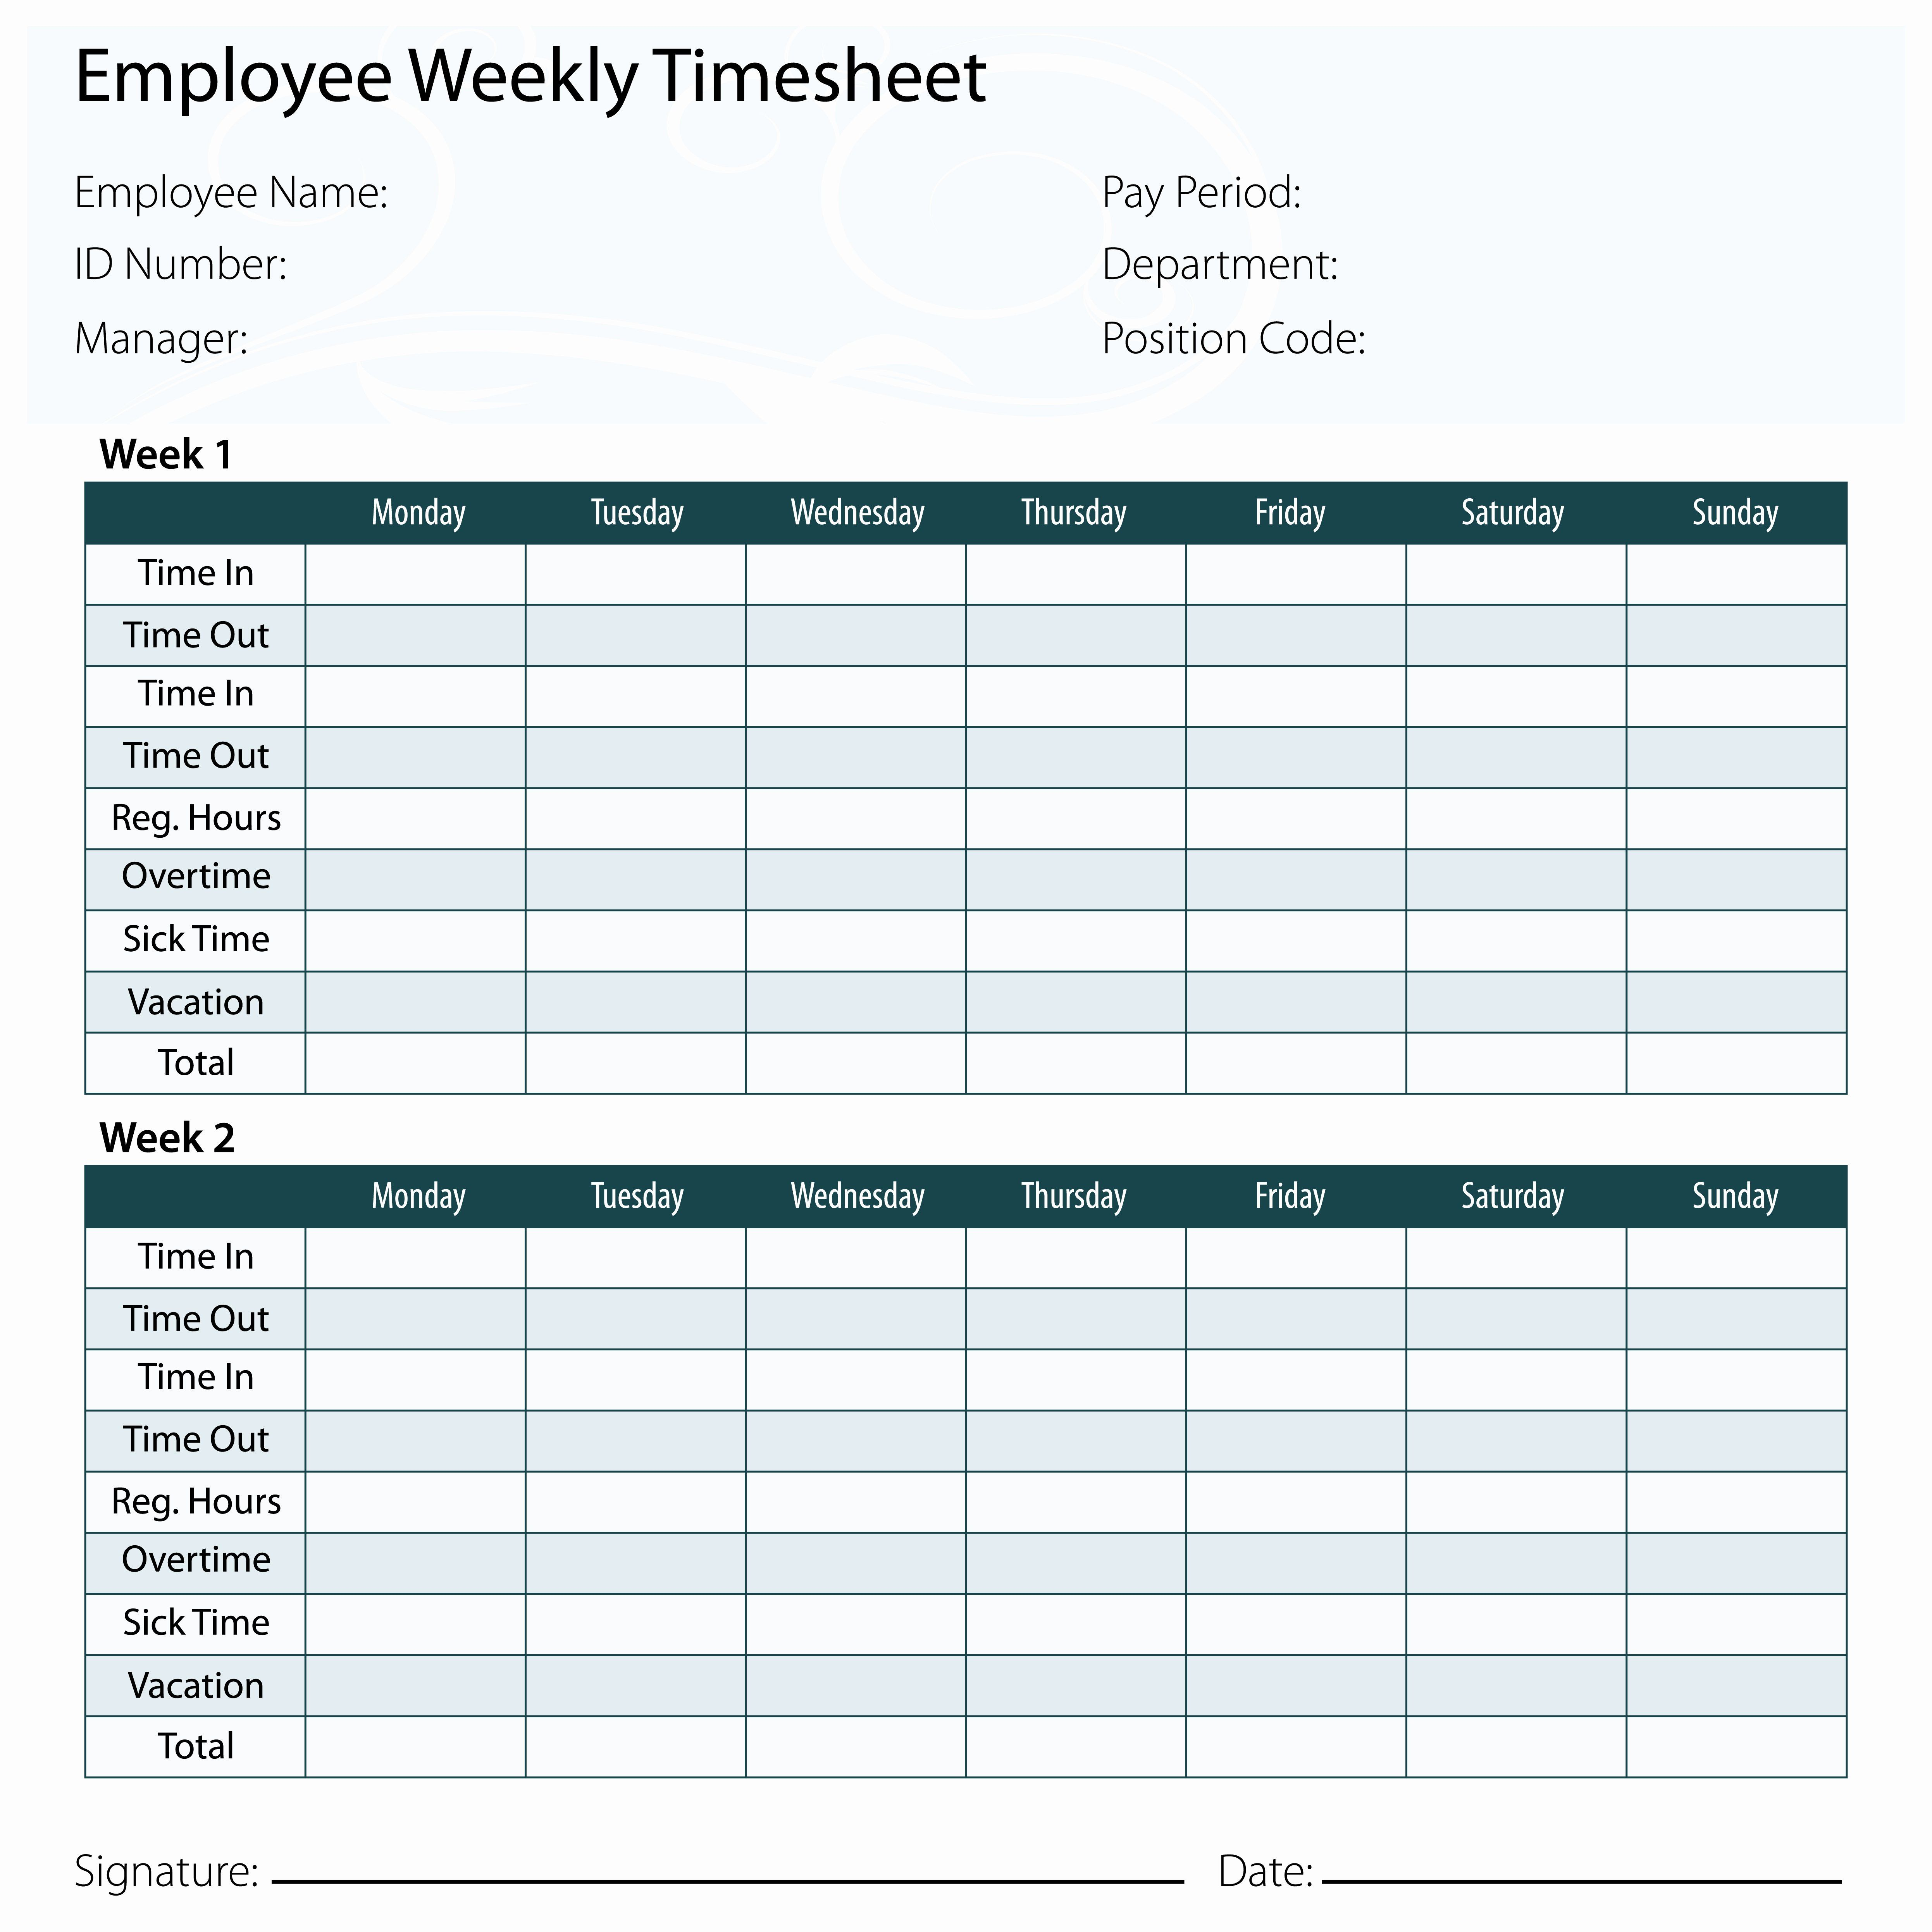 Employee Time Card Template Inspirational Why You Might Want Exempt Employees To Keep Timecards Timesheet Template Card Template Create Business Cards